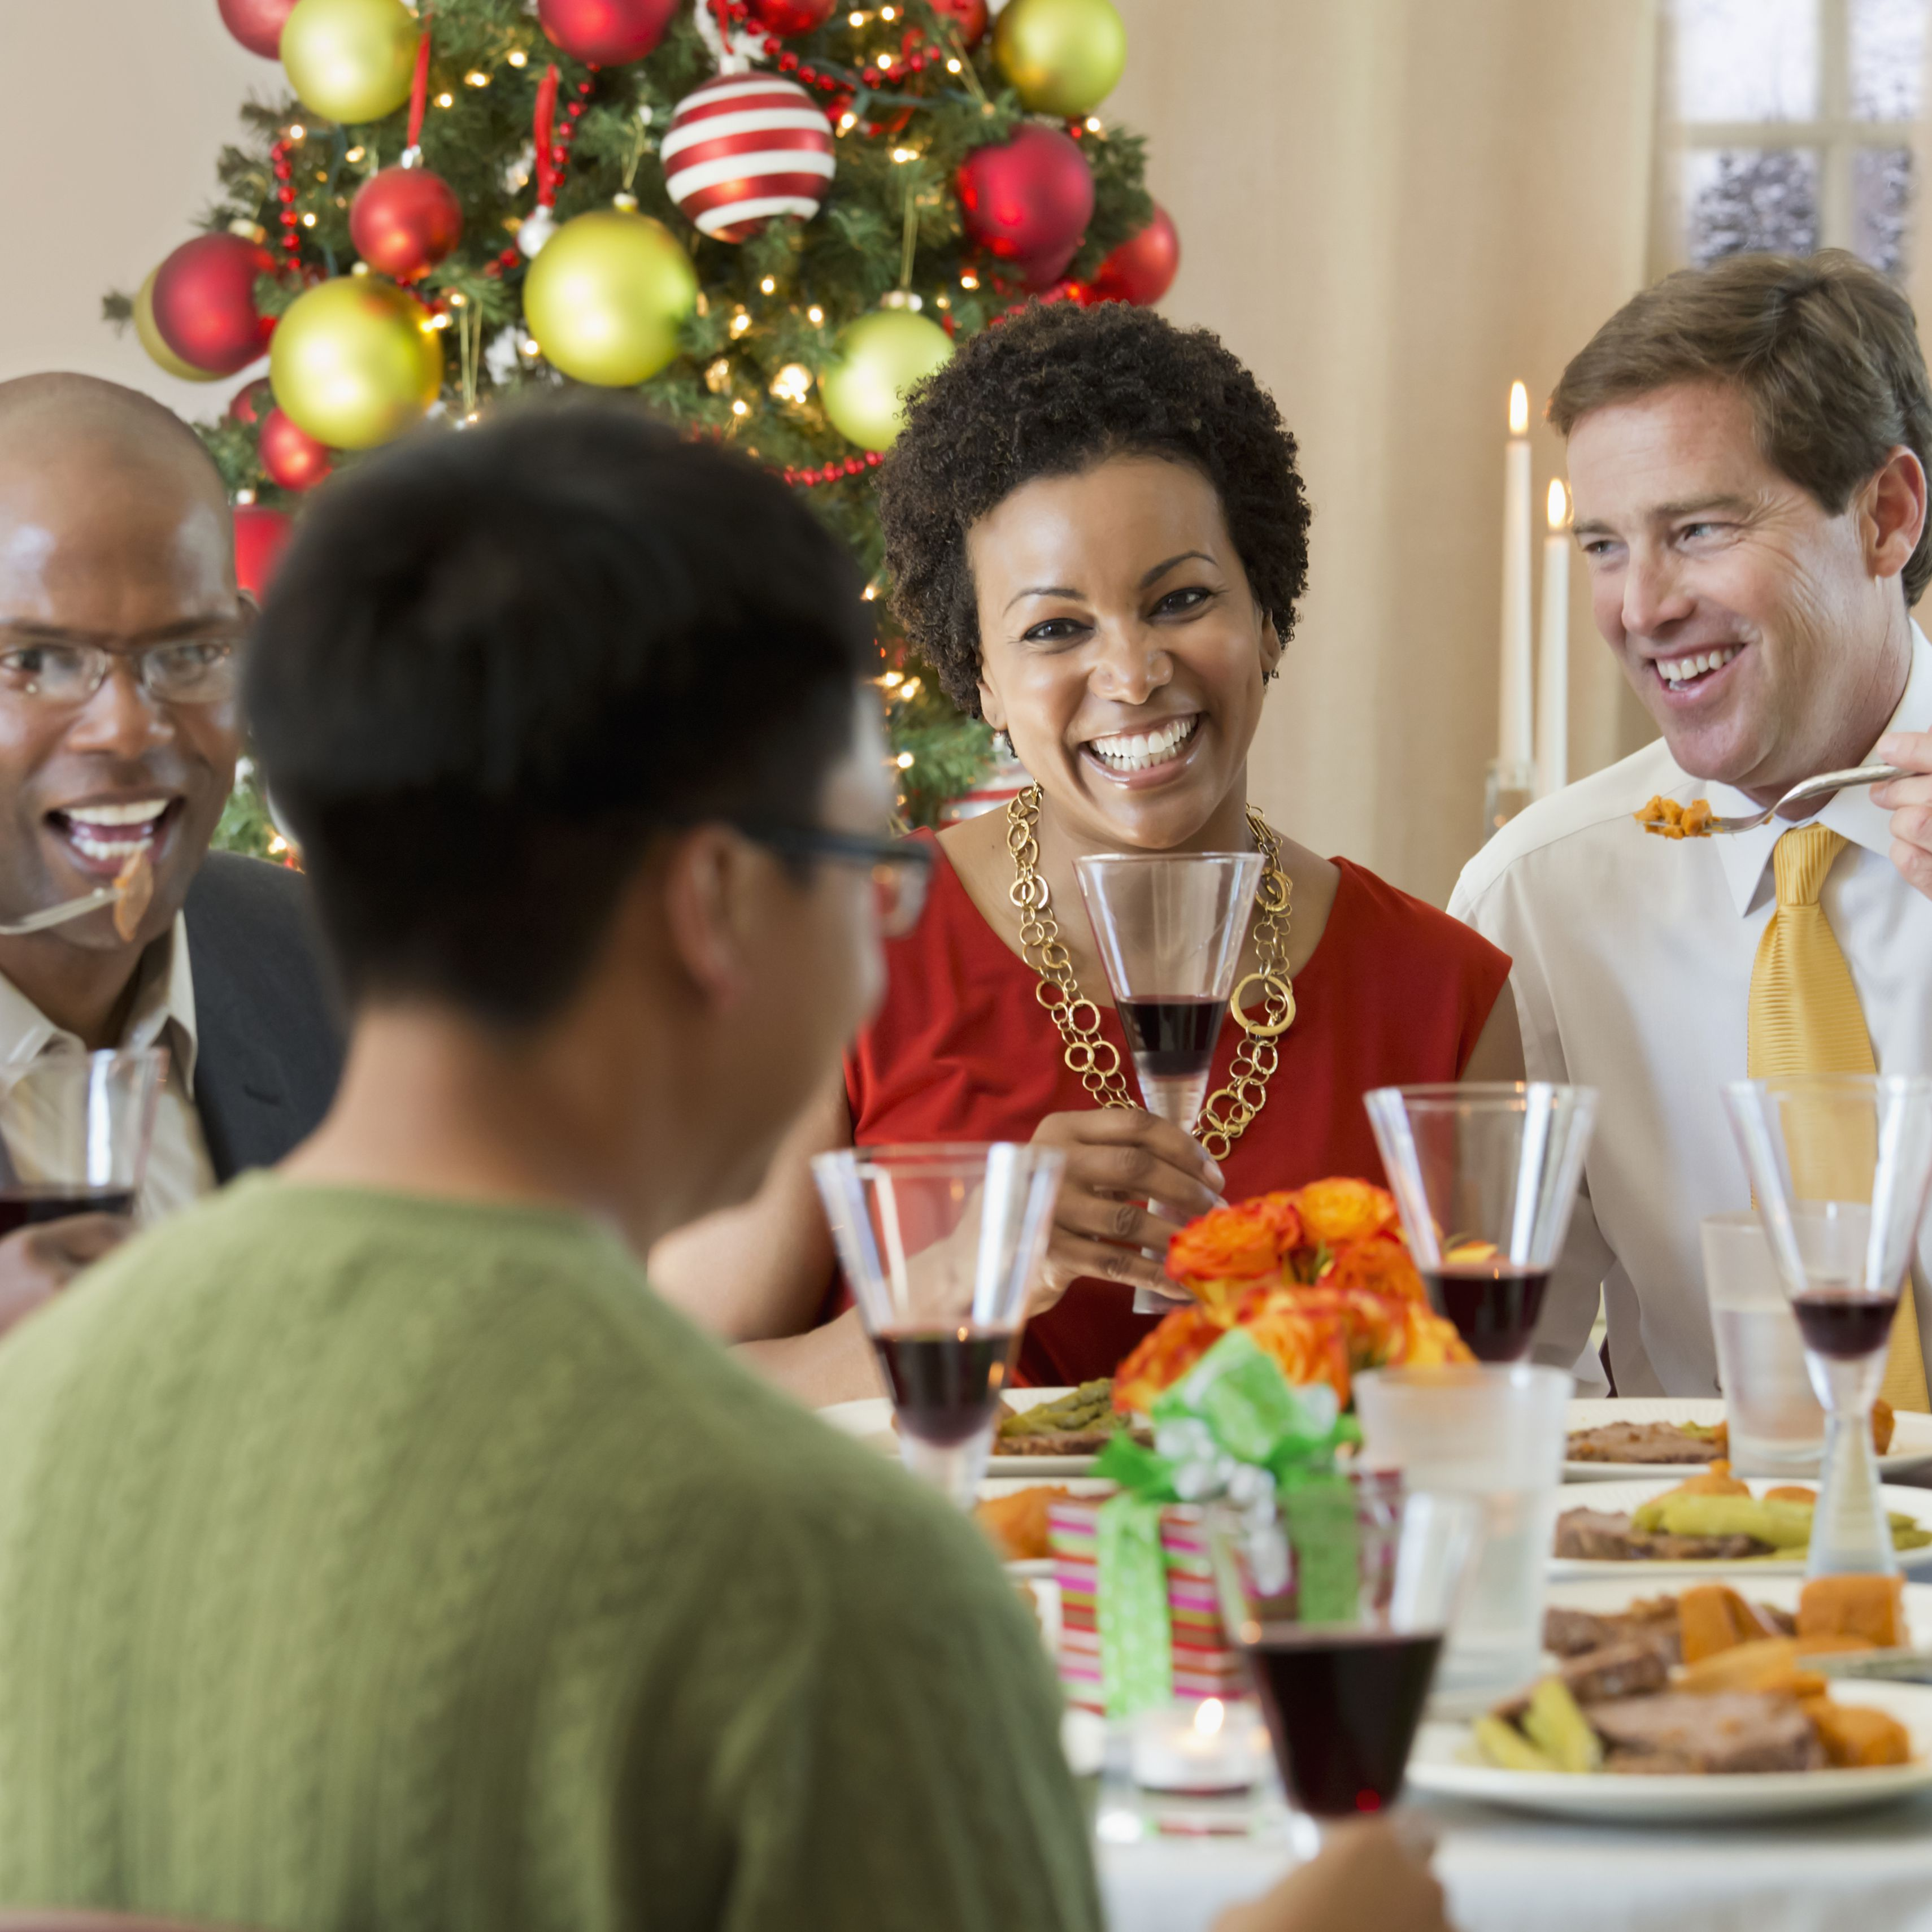 10 Reasons Why Employees Loathe Holiday Parties